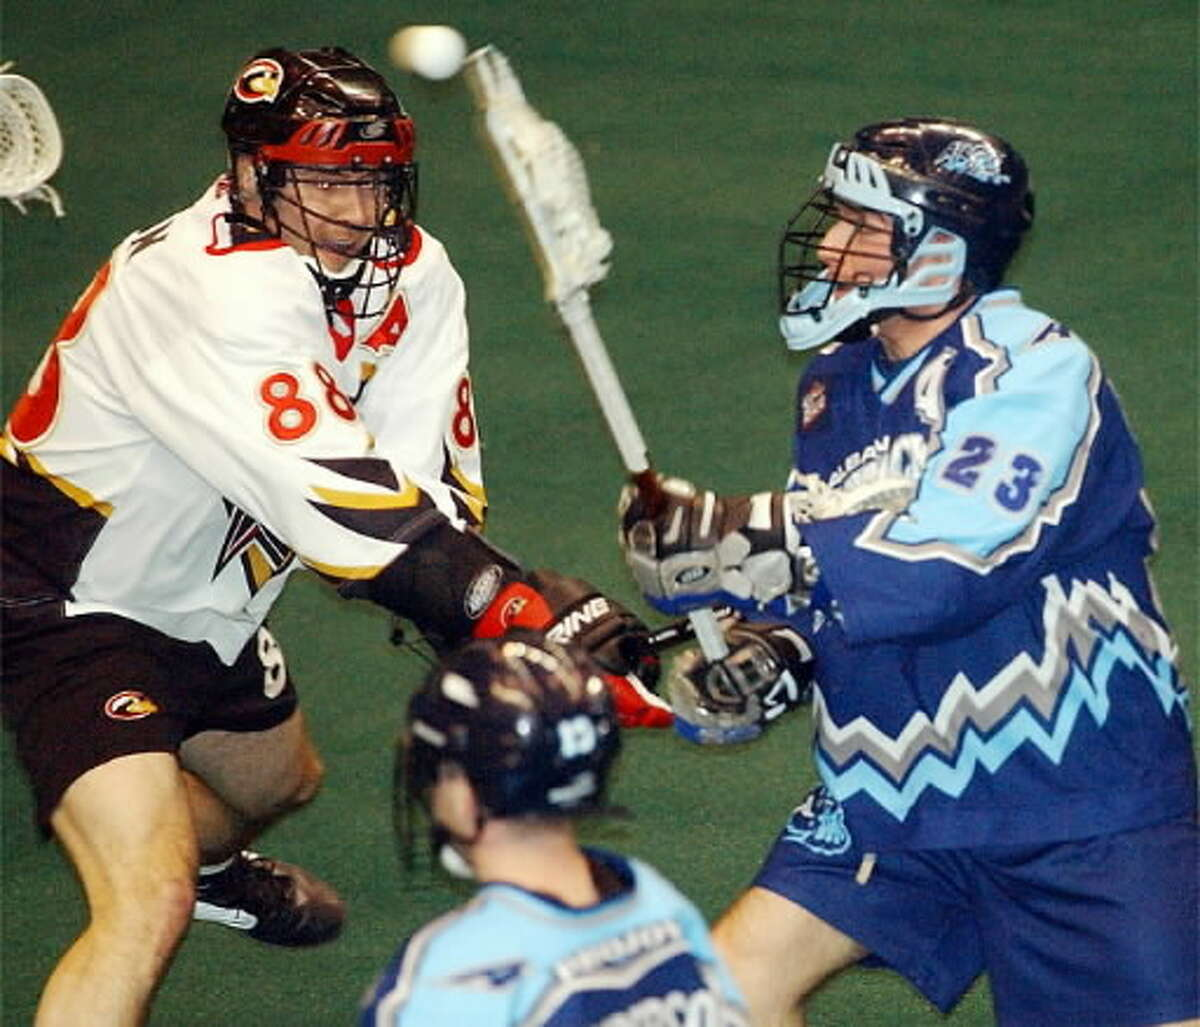 The National Lacrosse League will have a franchise in Albany for the first time since the Attack from 2000 to 2003. (Times Union archive)